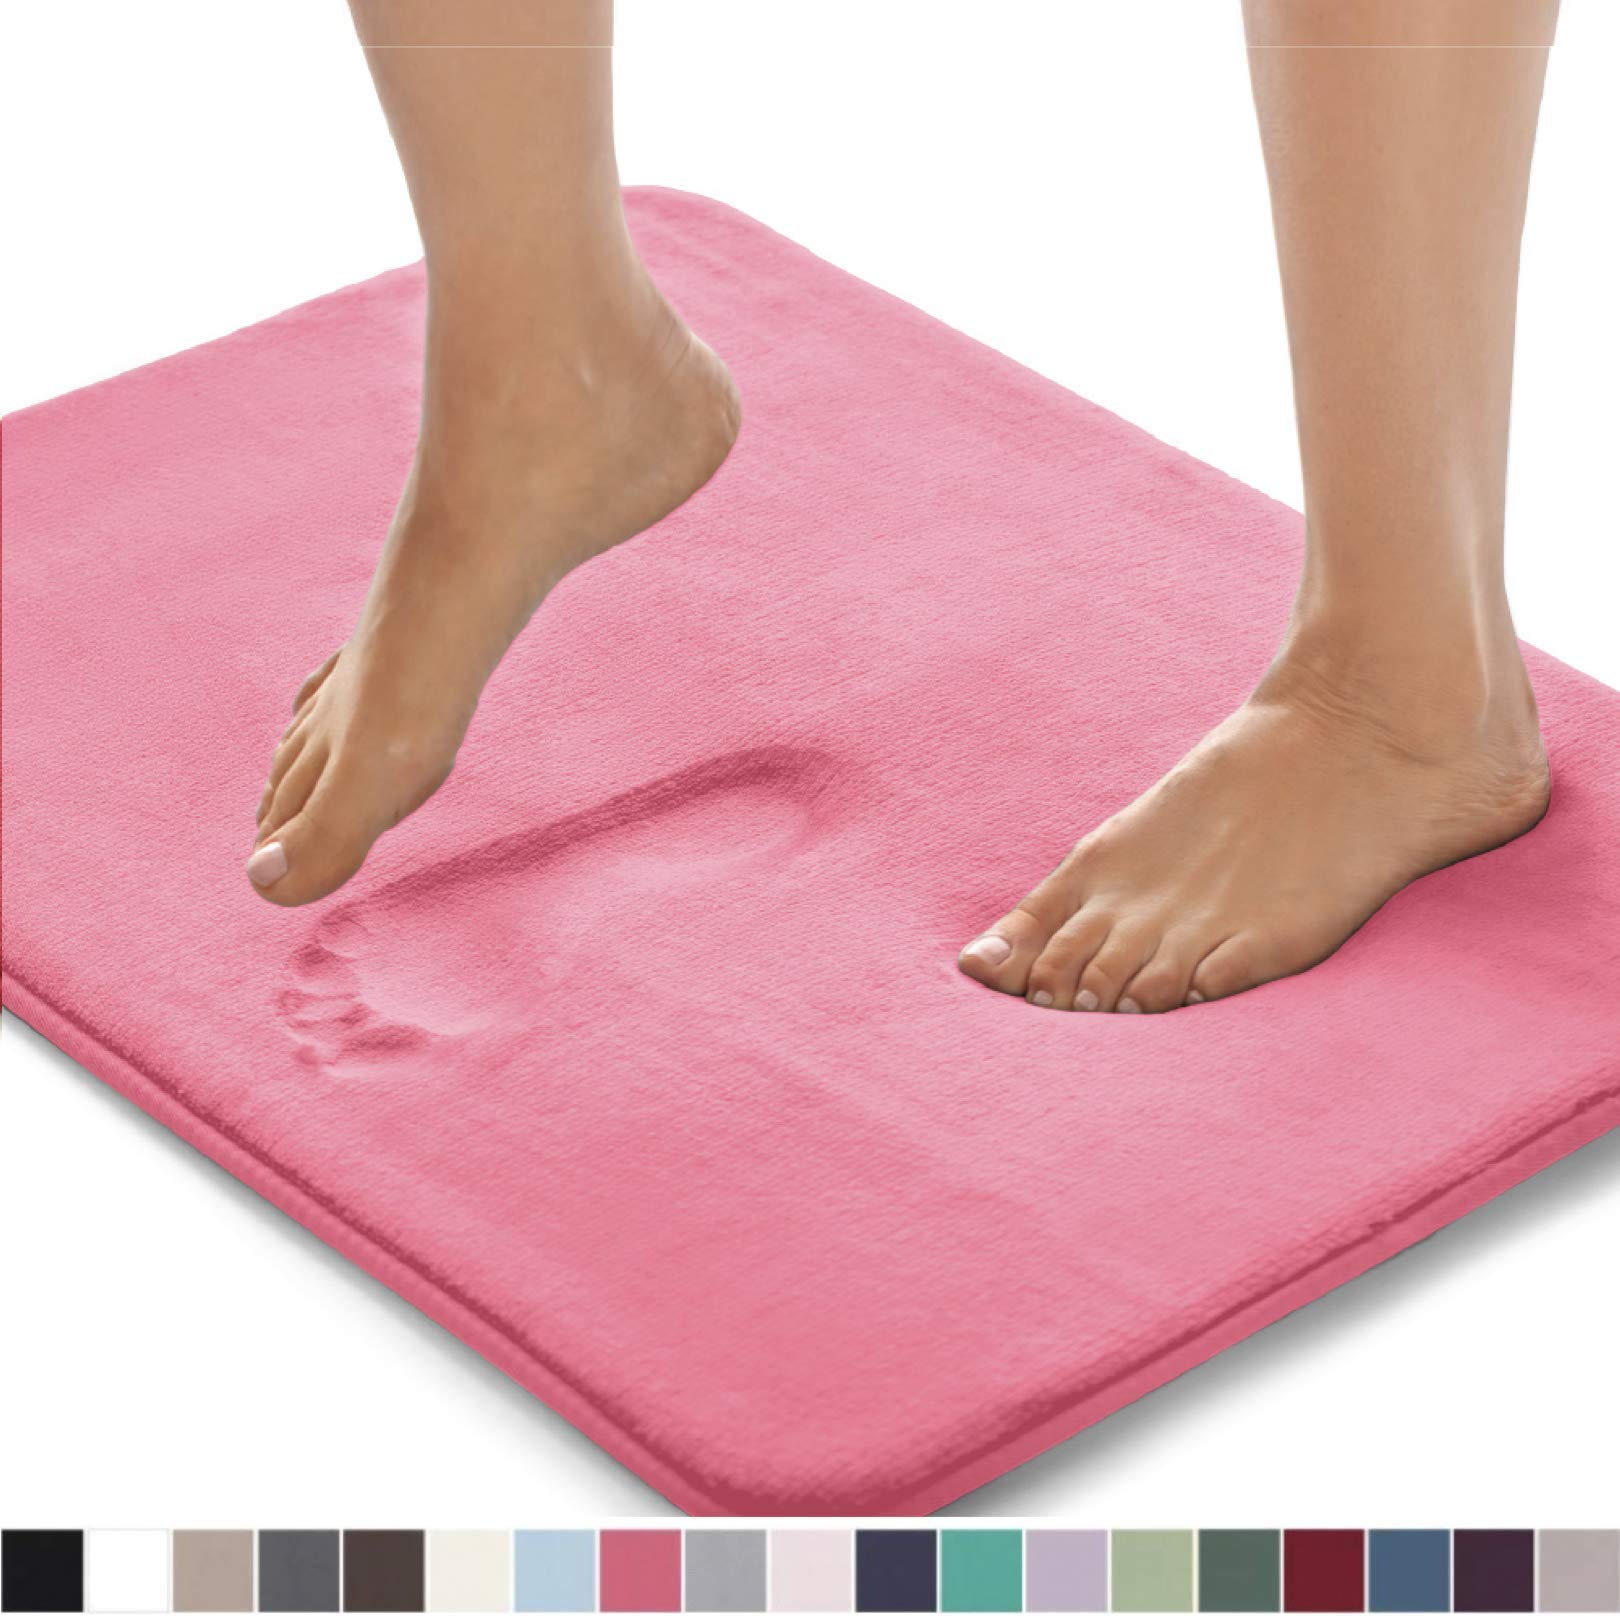 Gorilla Grip Original Thick Memory Foam Bath Rug, 60x24, Cushioned, Soft Floor Mats, Absorbent Premium Bathroom Mat Rugs, Machine Washable, Luxury Plush Comfortable Carpet for Bath Room, Hot Pink